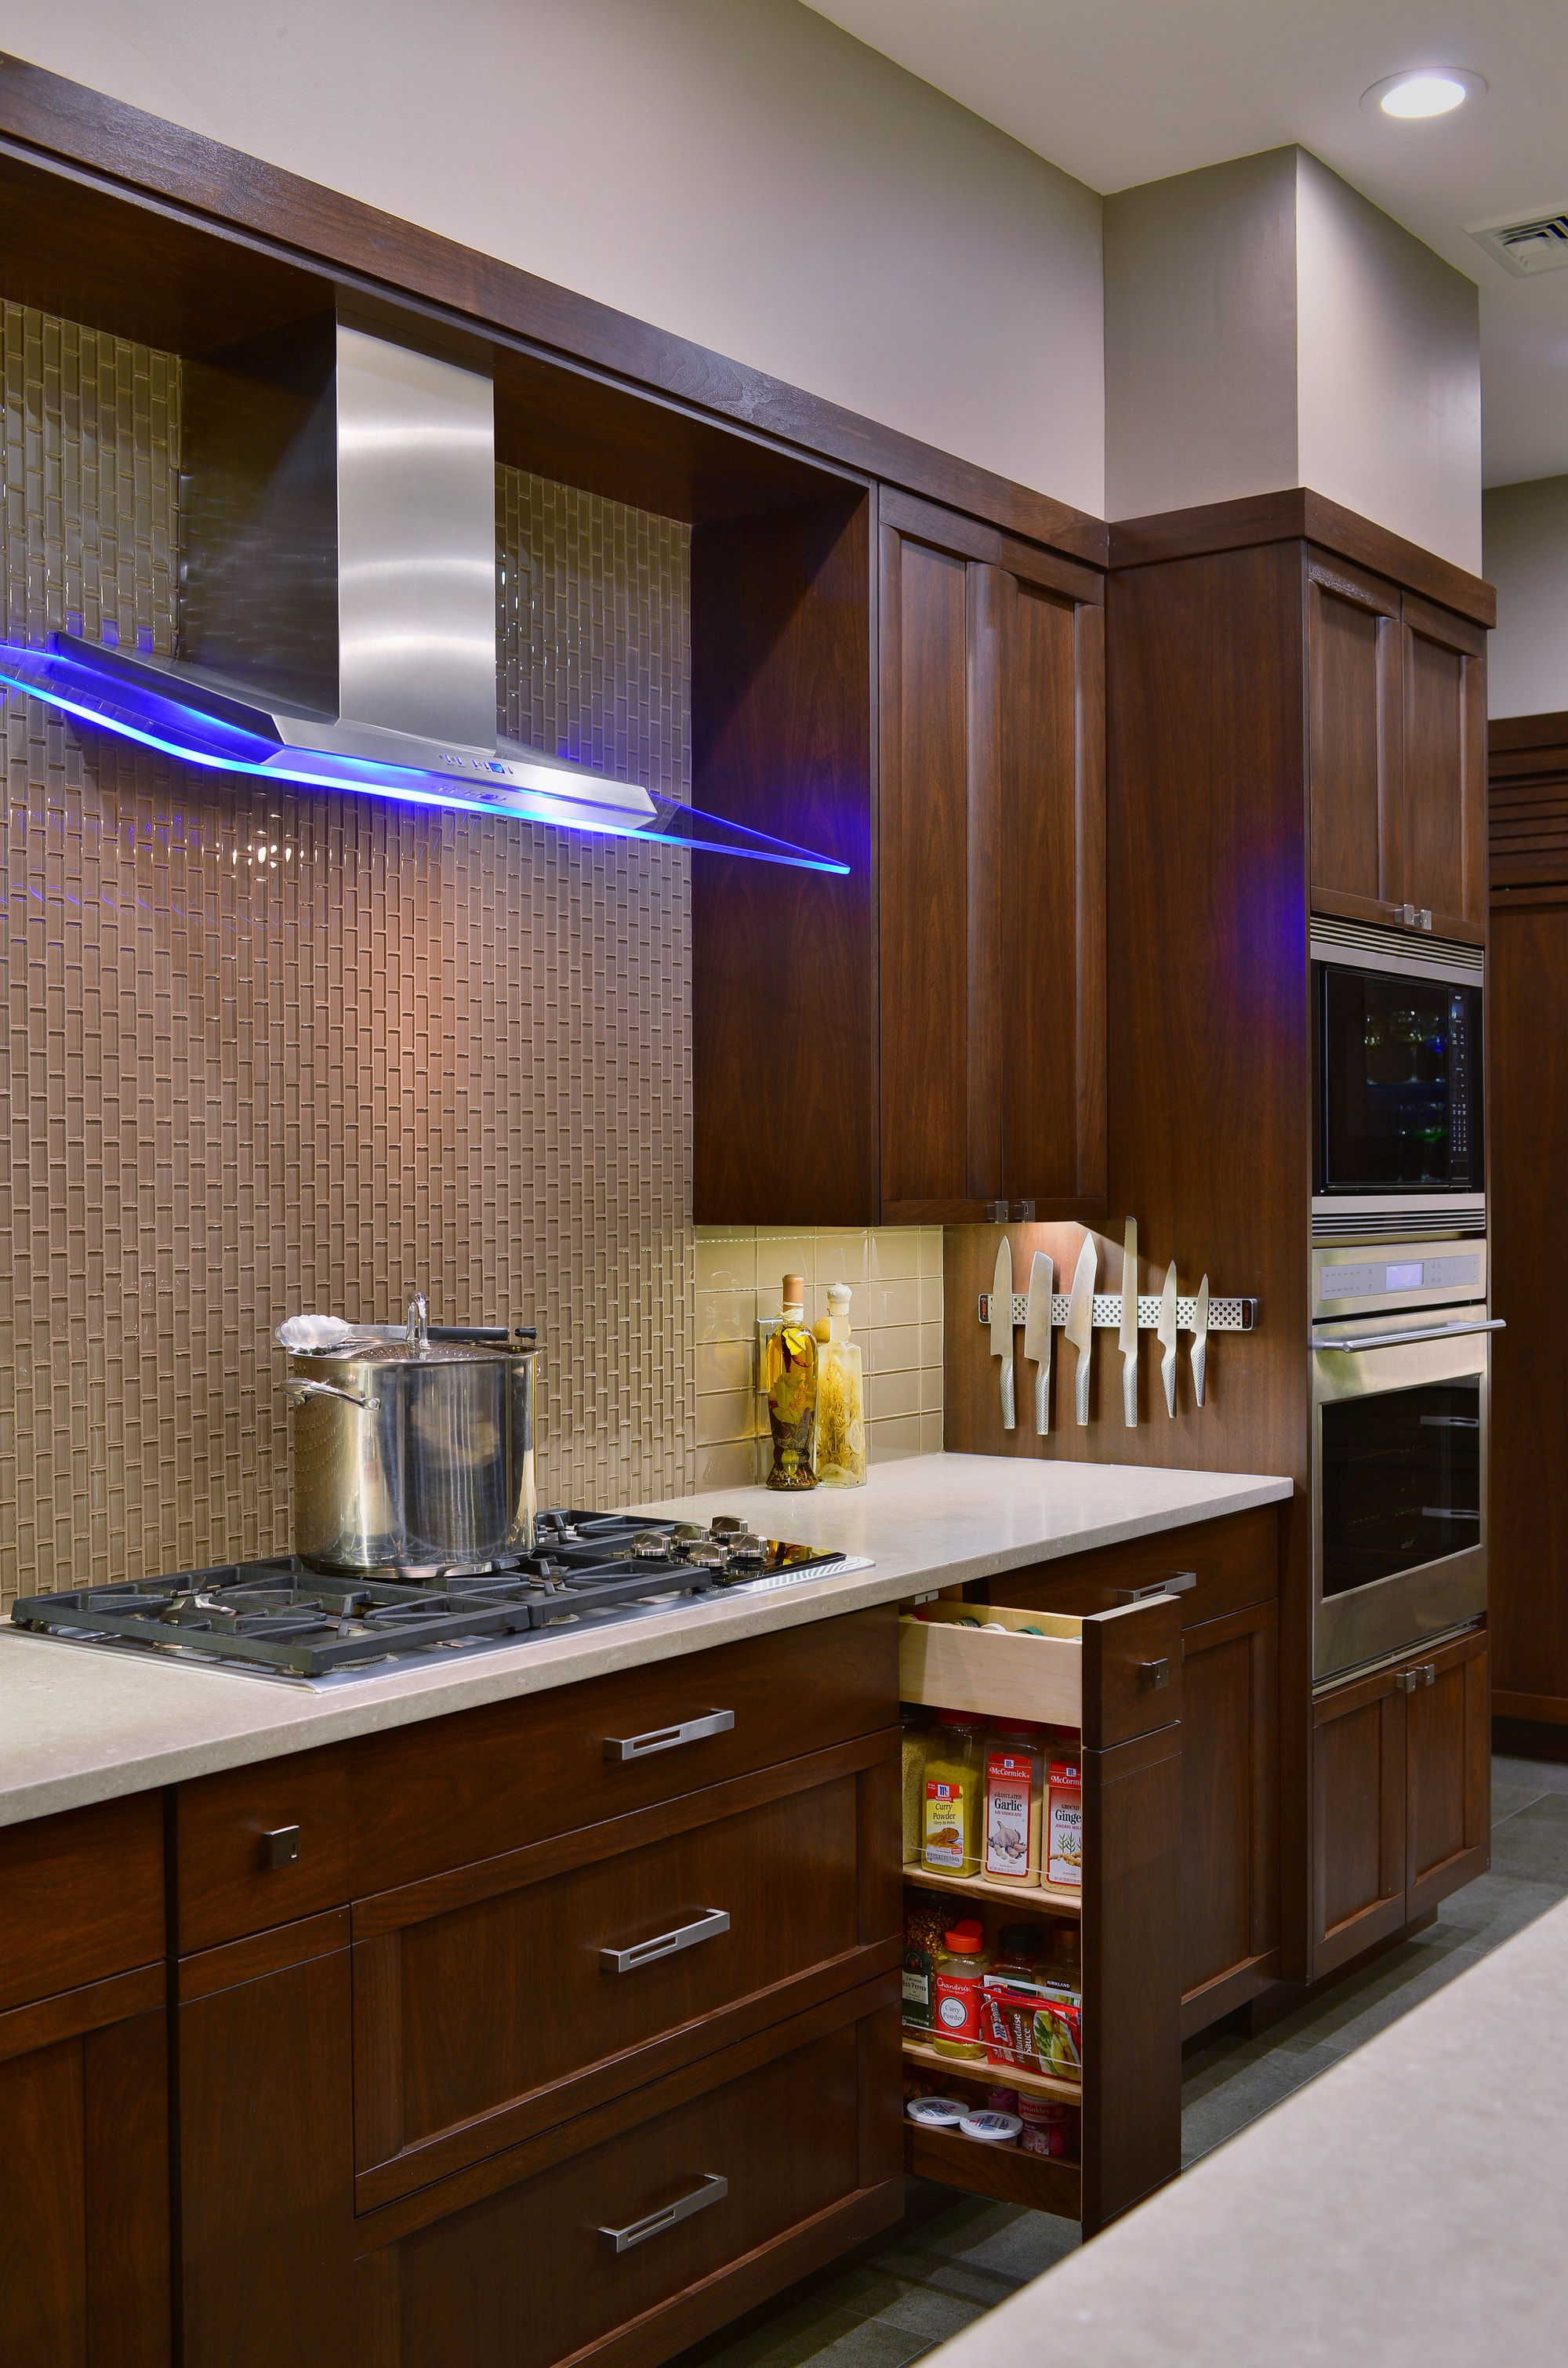 Transitional style kitchen with space saving drawer